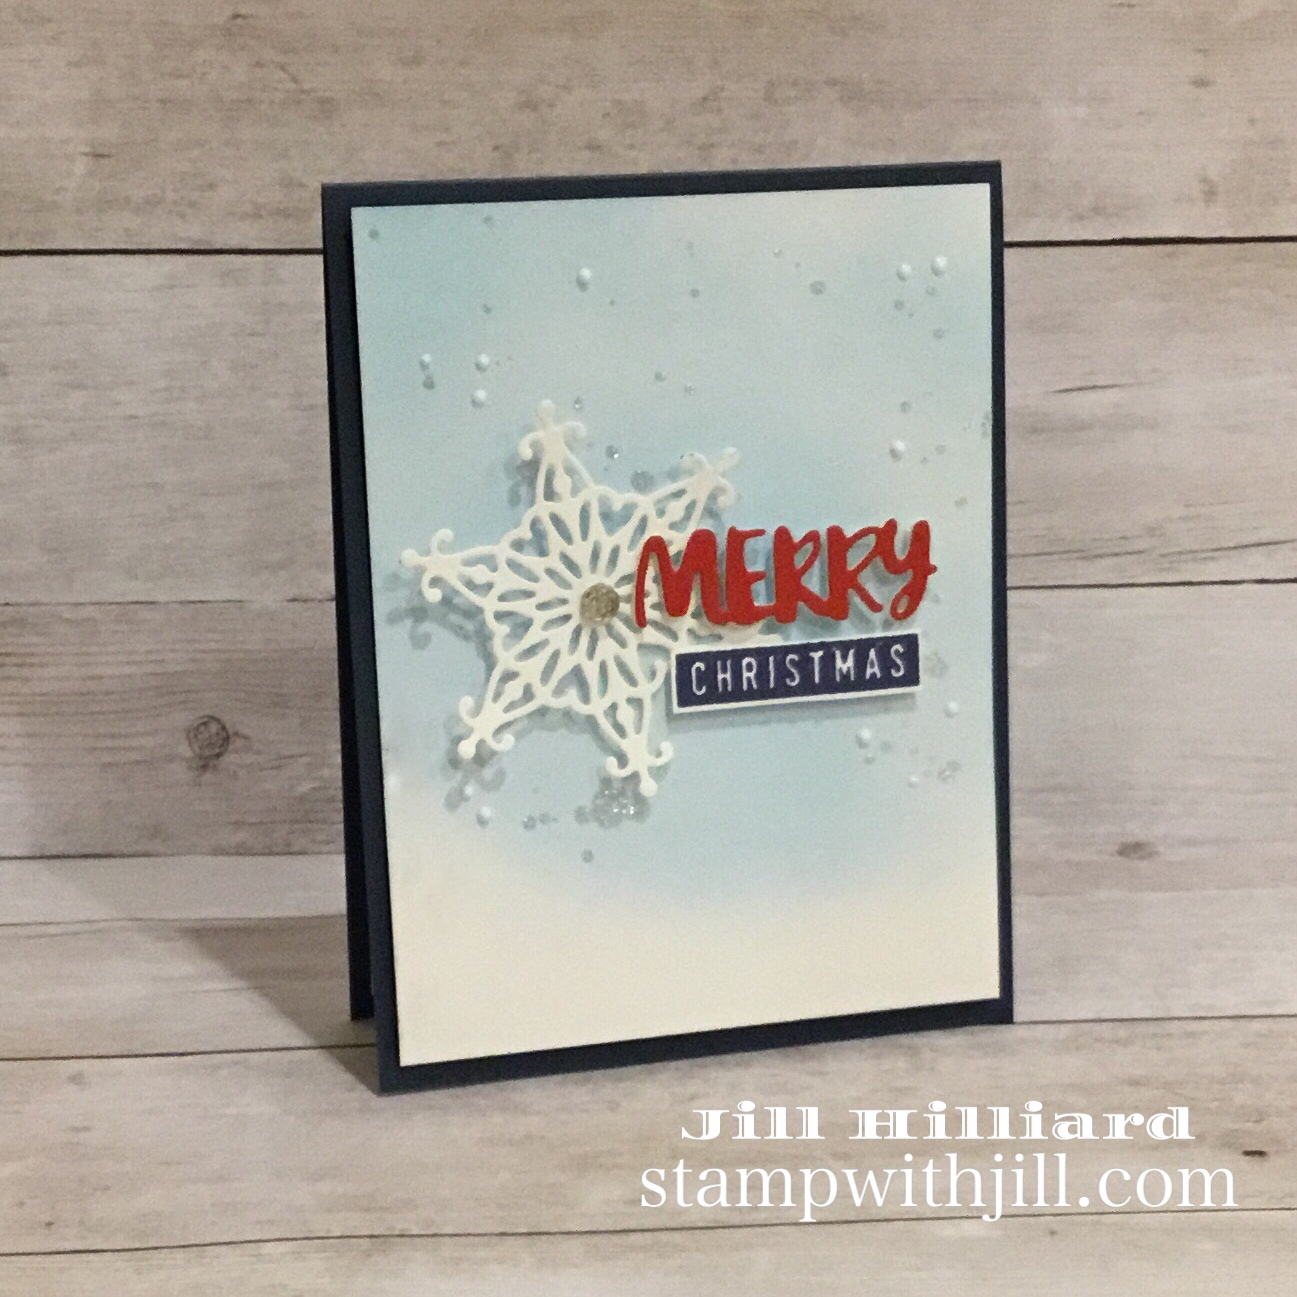 spellbinders die of the month dec 2018, stampwithjill christmas card